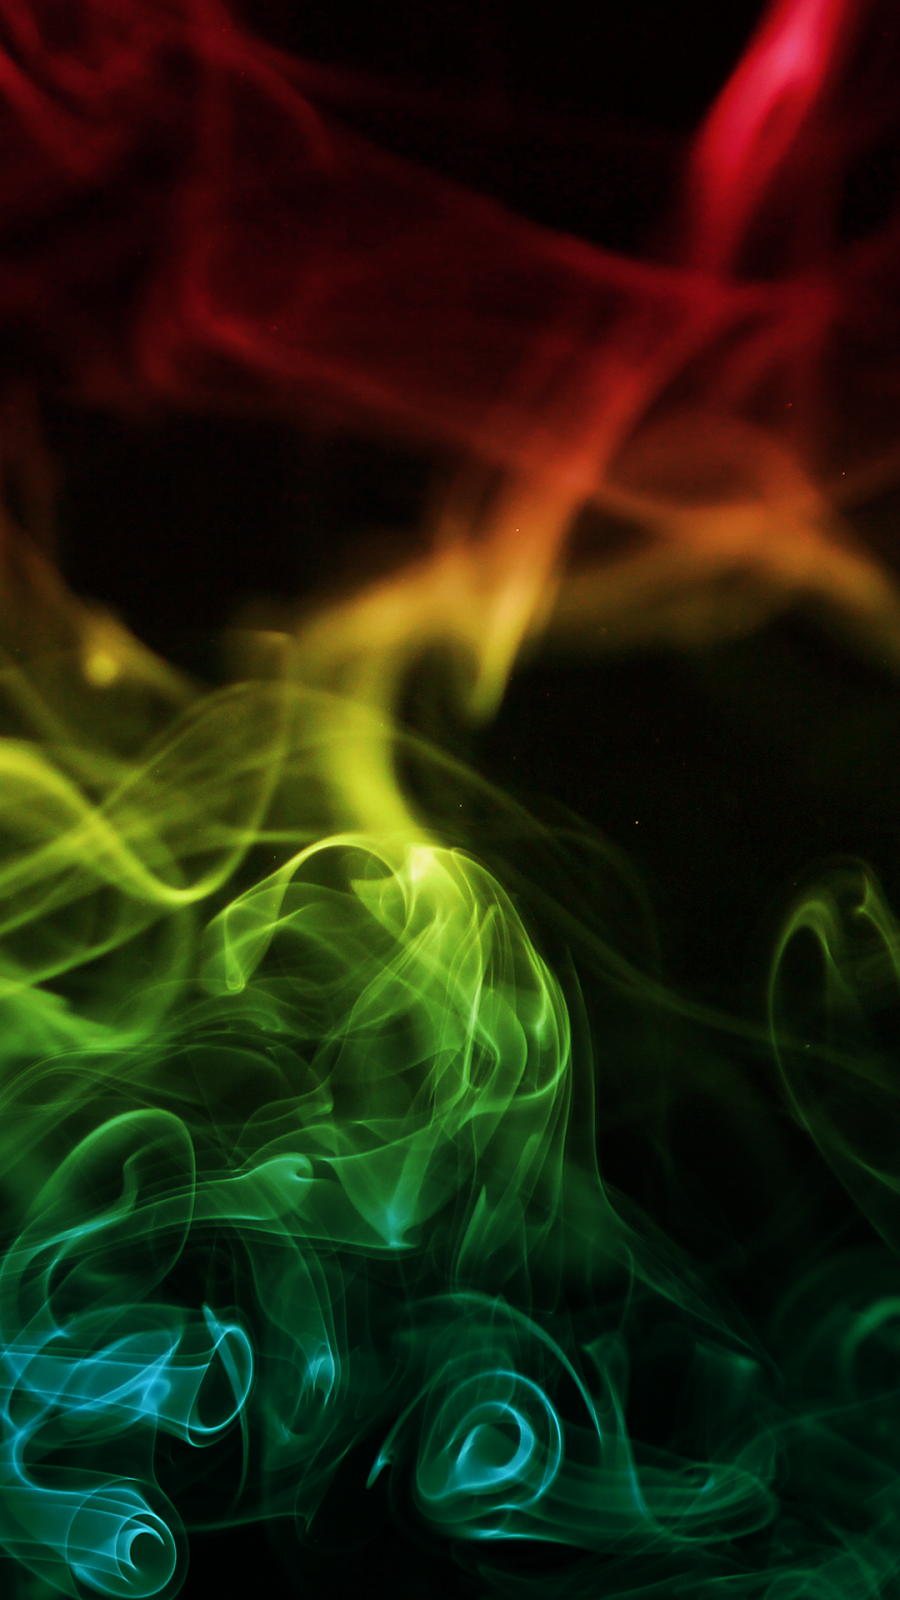 Smoke HD Wallpaper For Mobile - Wallpapers For Mobile Phones